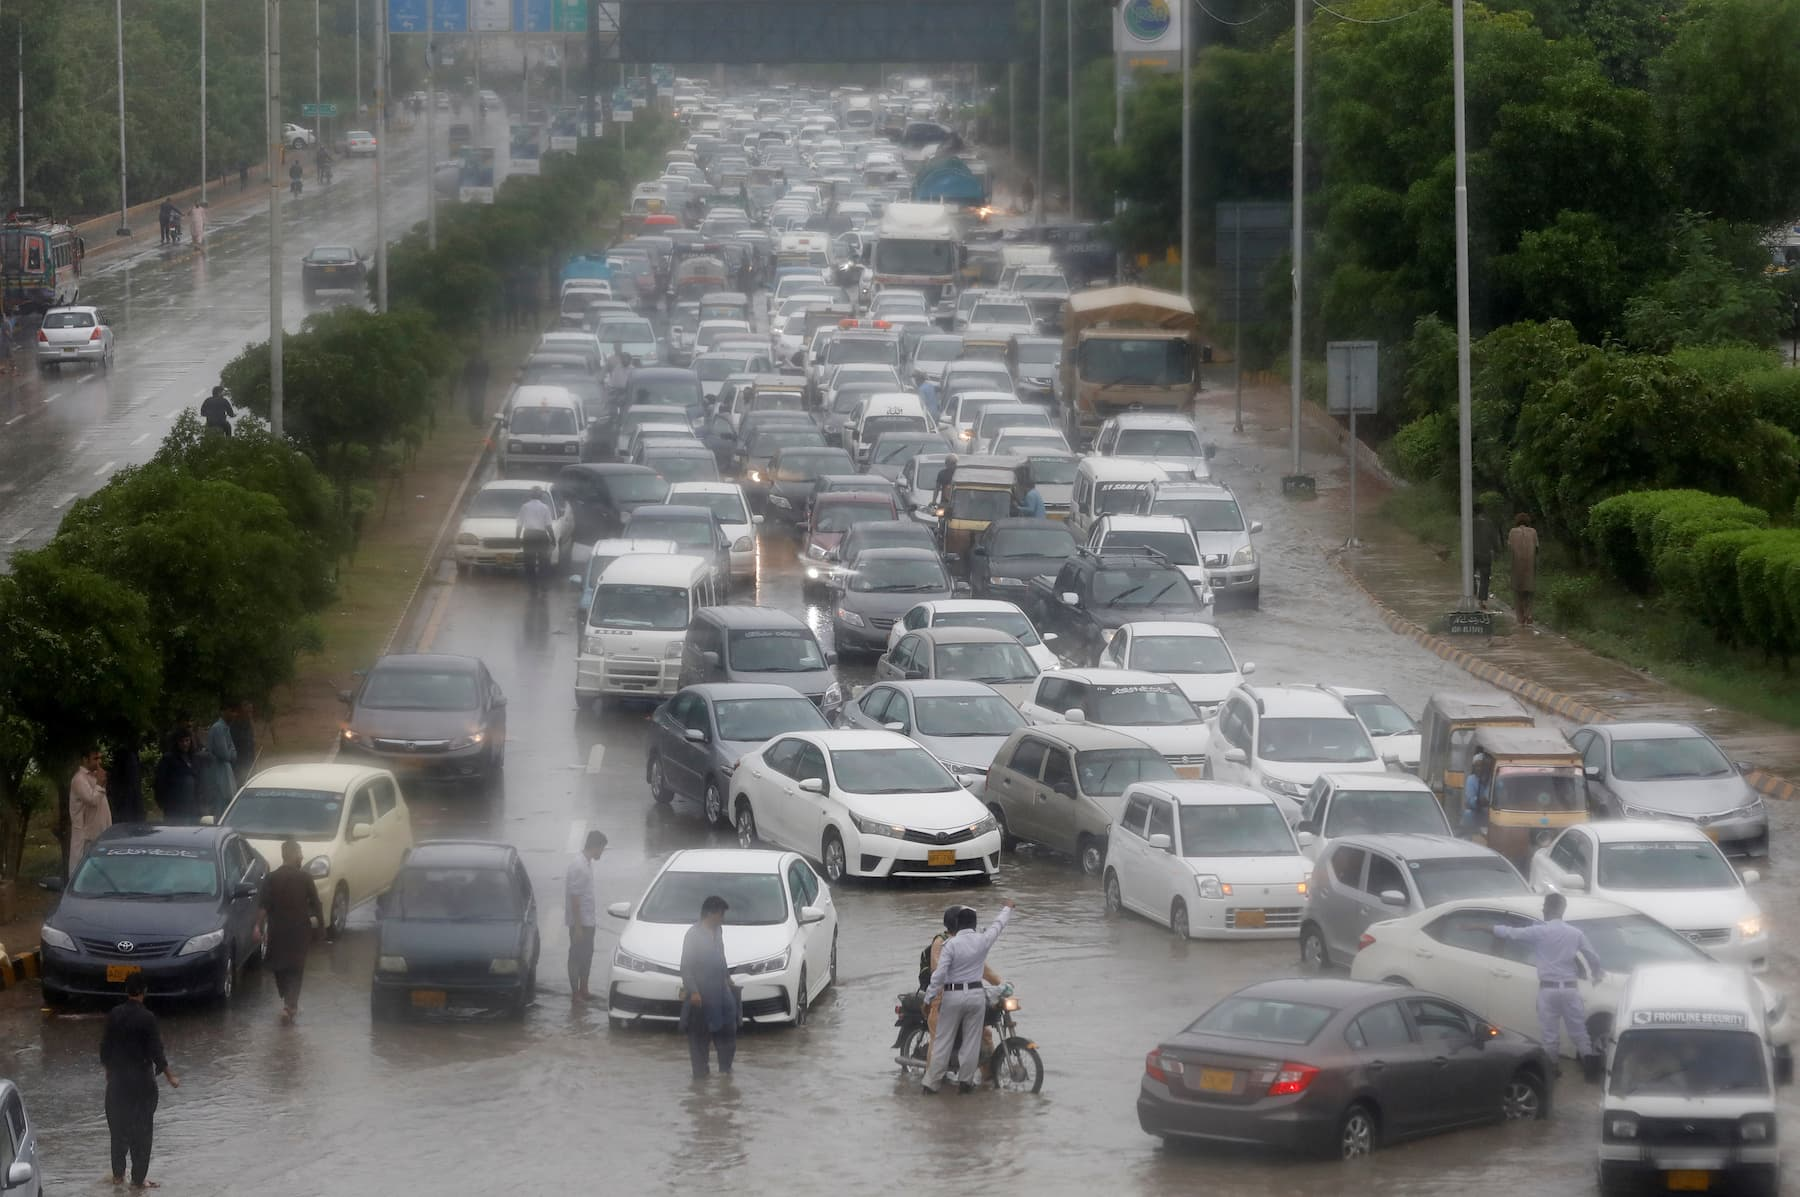 A general view shows traffic on a Karachi road during the monsoon rain on Tuesday, August 25. — Reuters